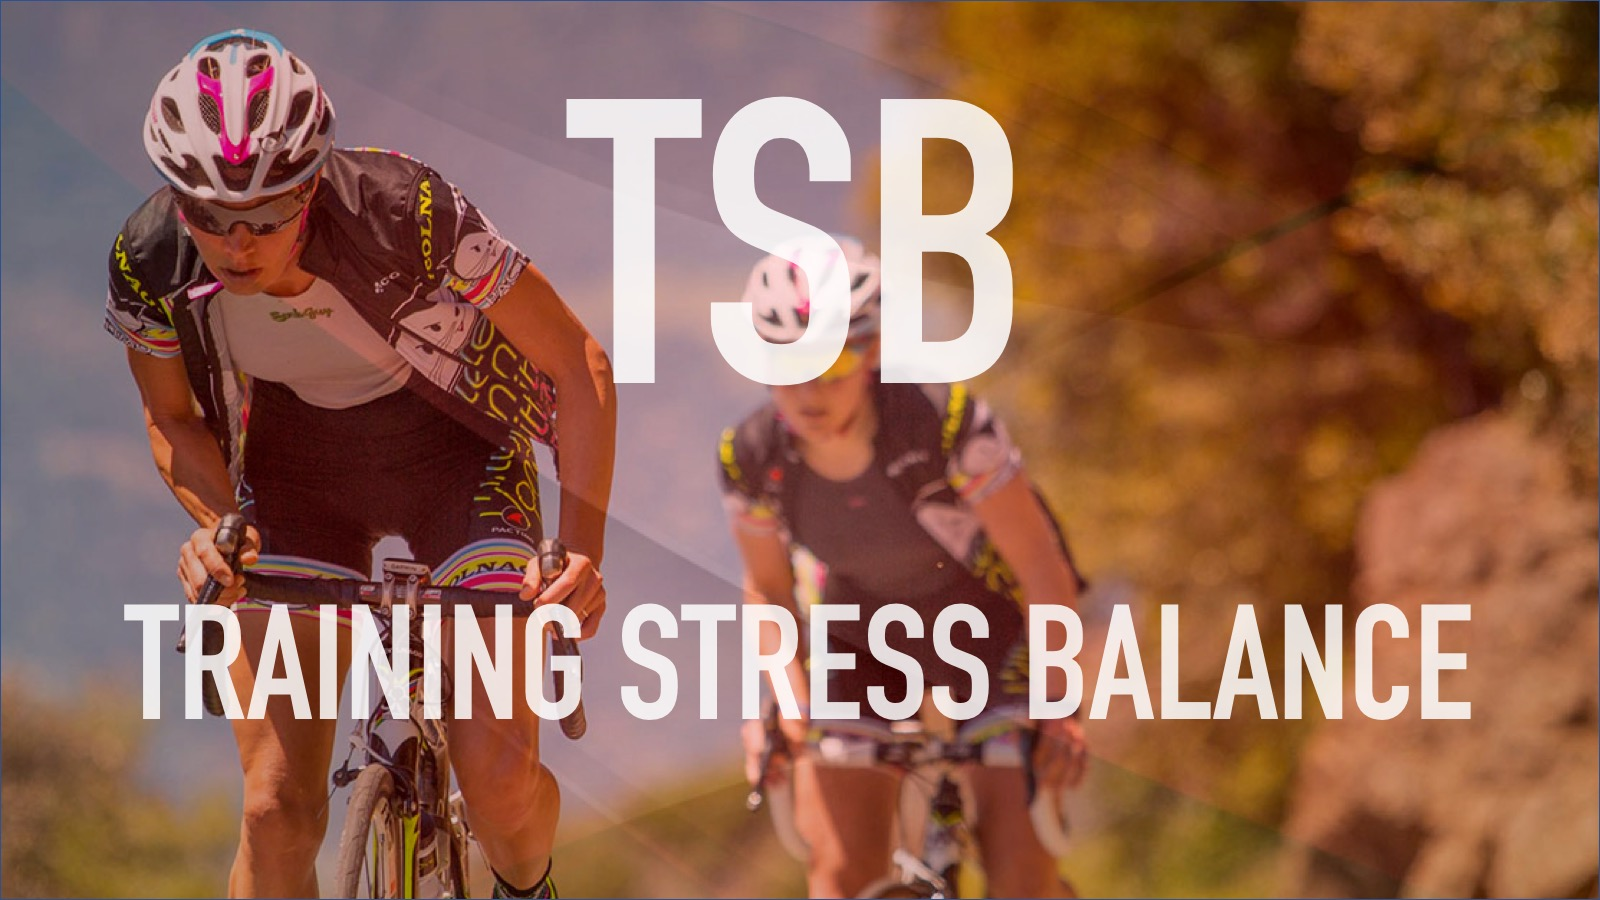 Training Stress Balance (TSB)